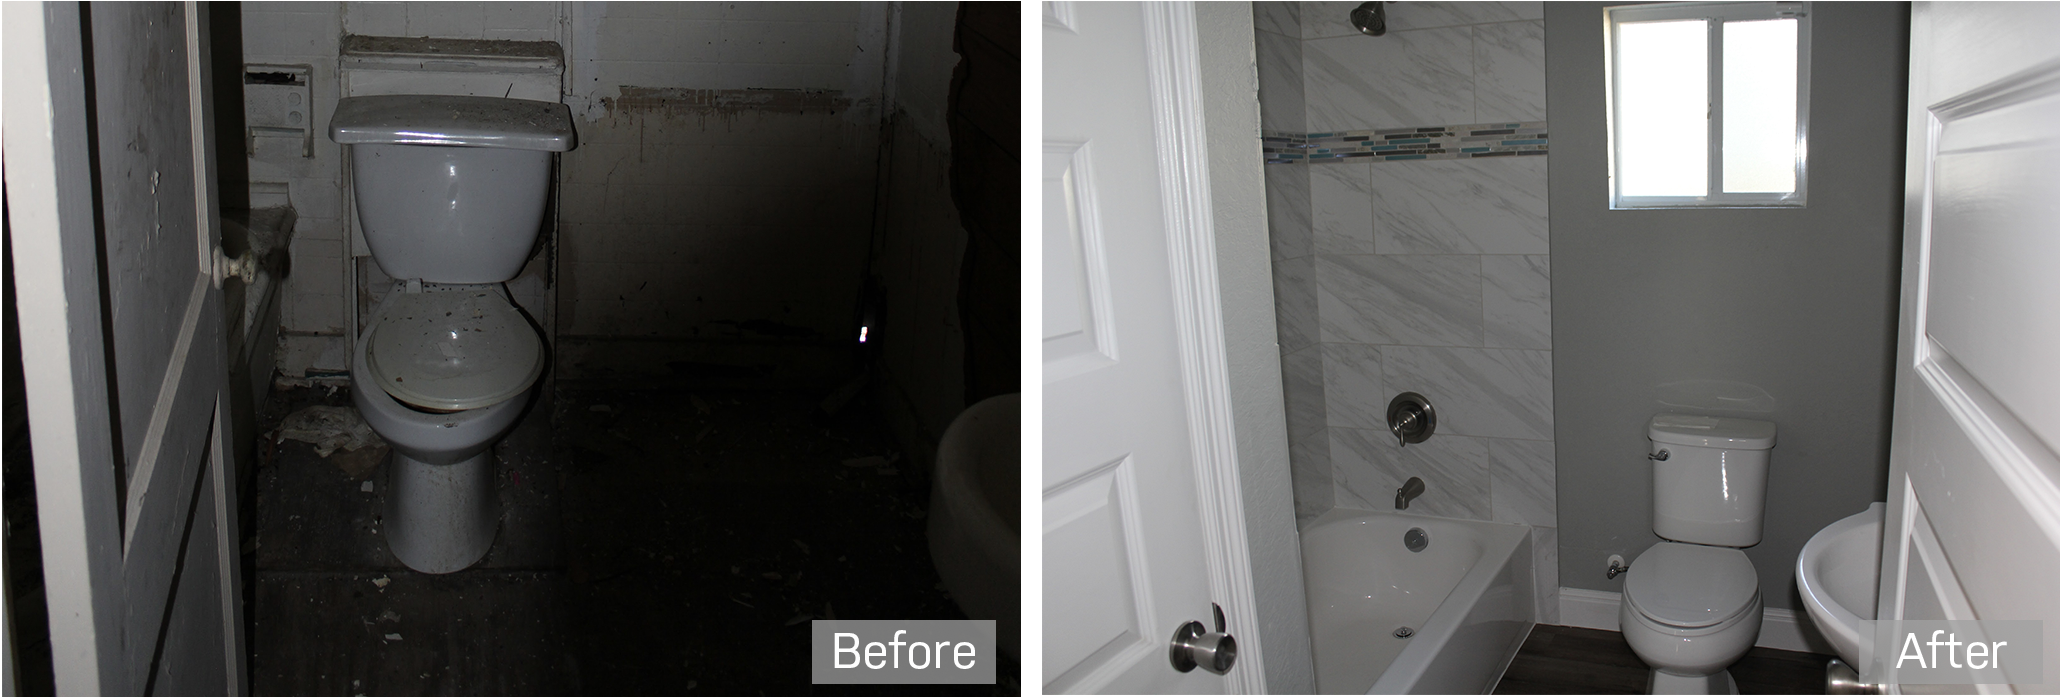 bathroom renovation investment property